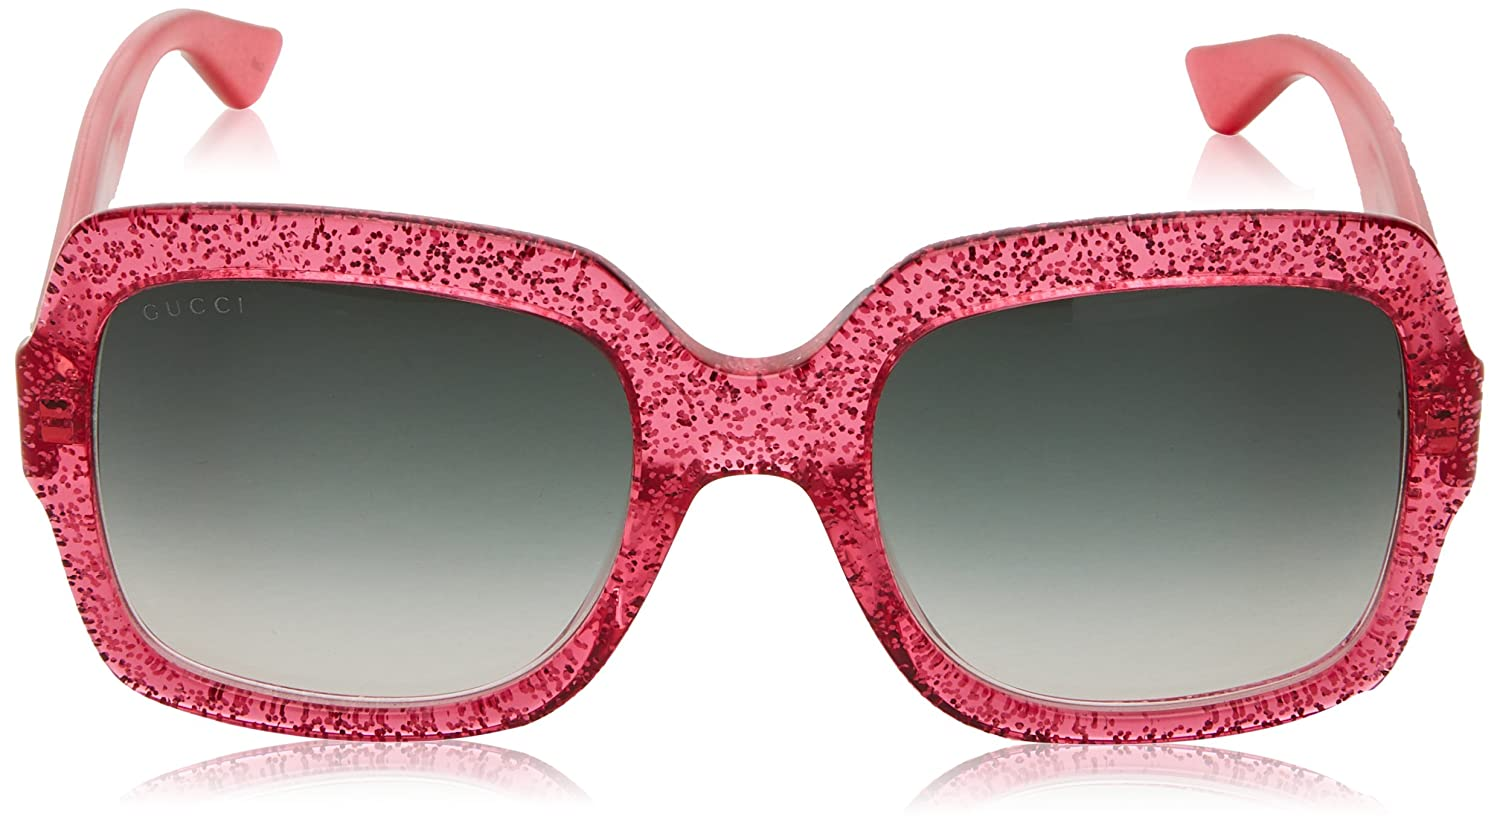 b91b3d8d3d Amazon.com  Gucci GG0036S 007 (Glitter Pink fuschia fuchsia with Grey  Gradient with Mirror effect lenses)  Clothing